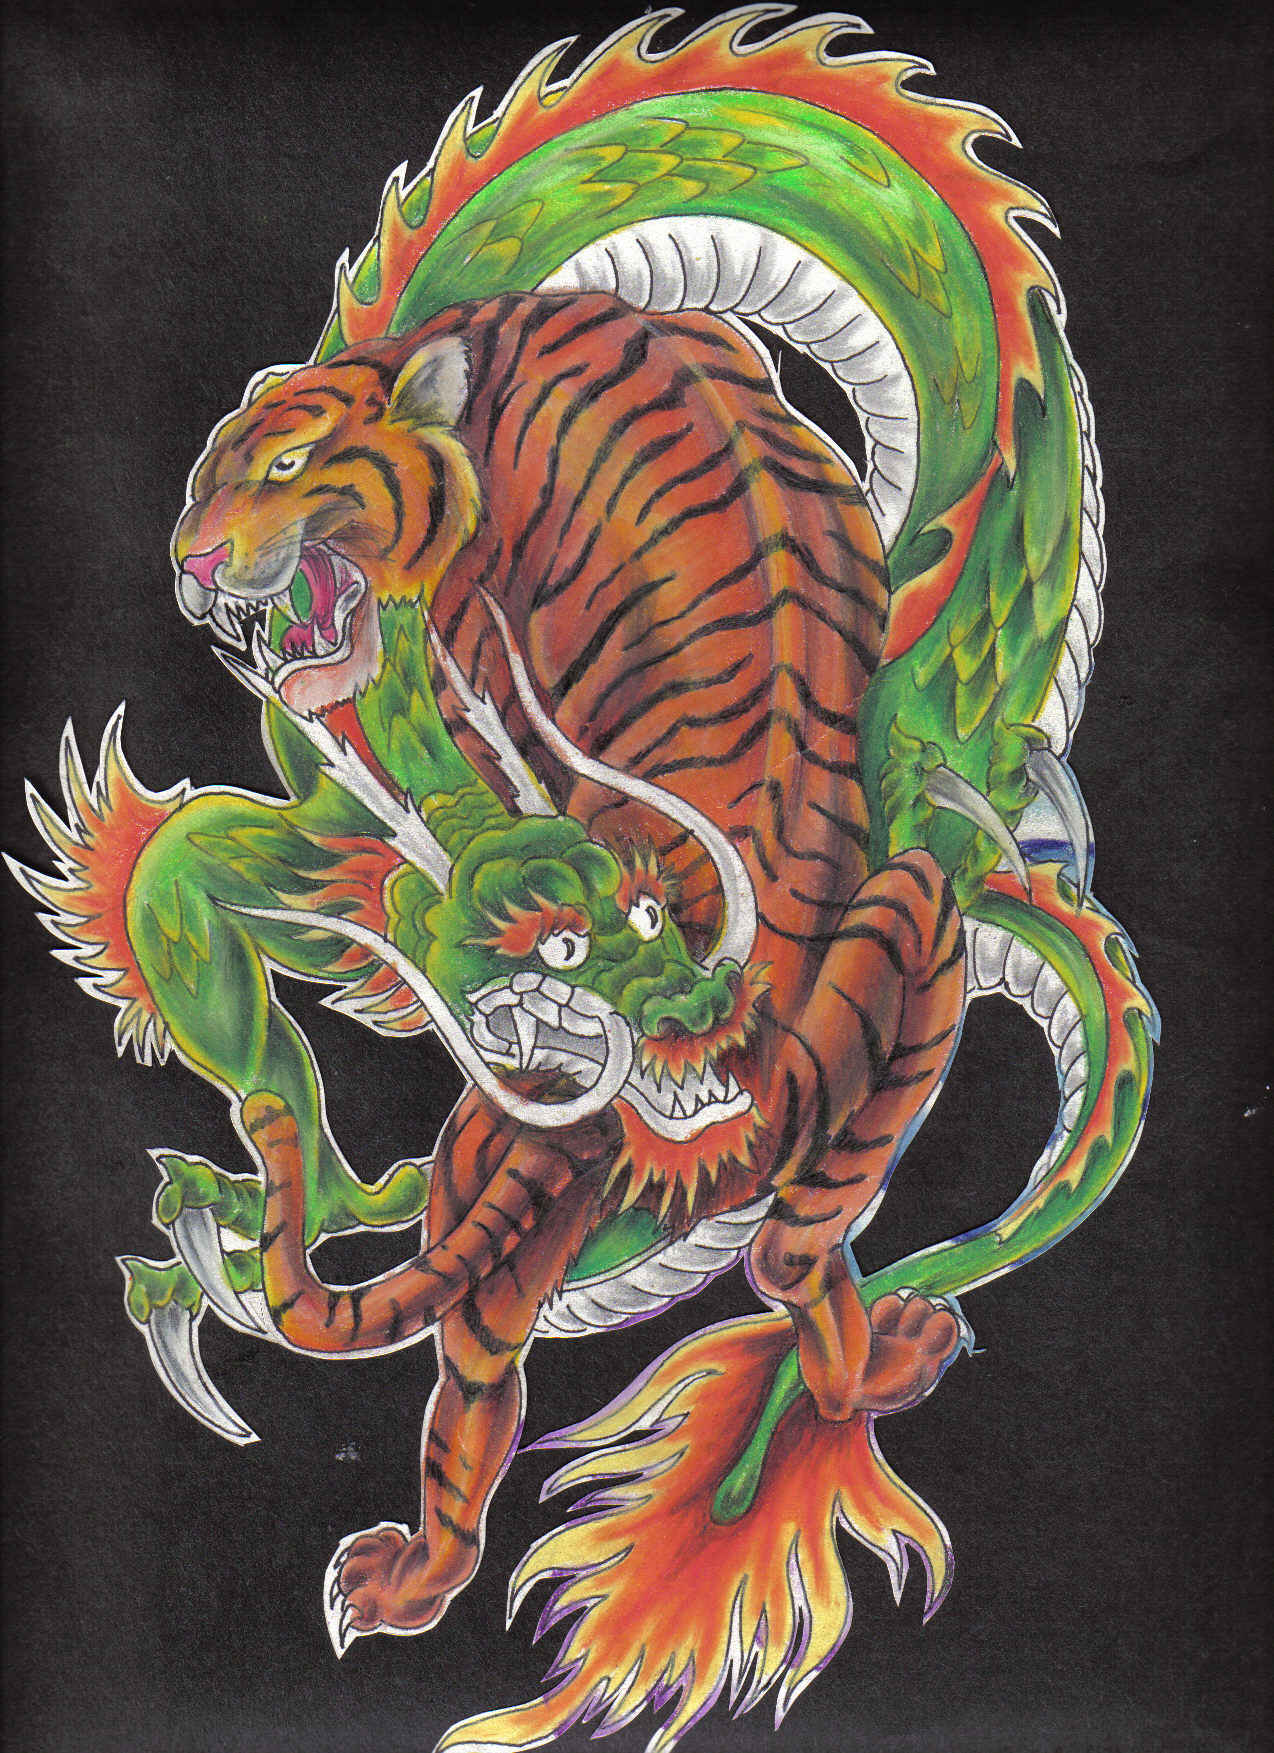 0aa4eda42 The tiger and the dragon by hellcatmolly on DeviantArt